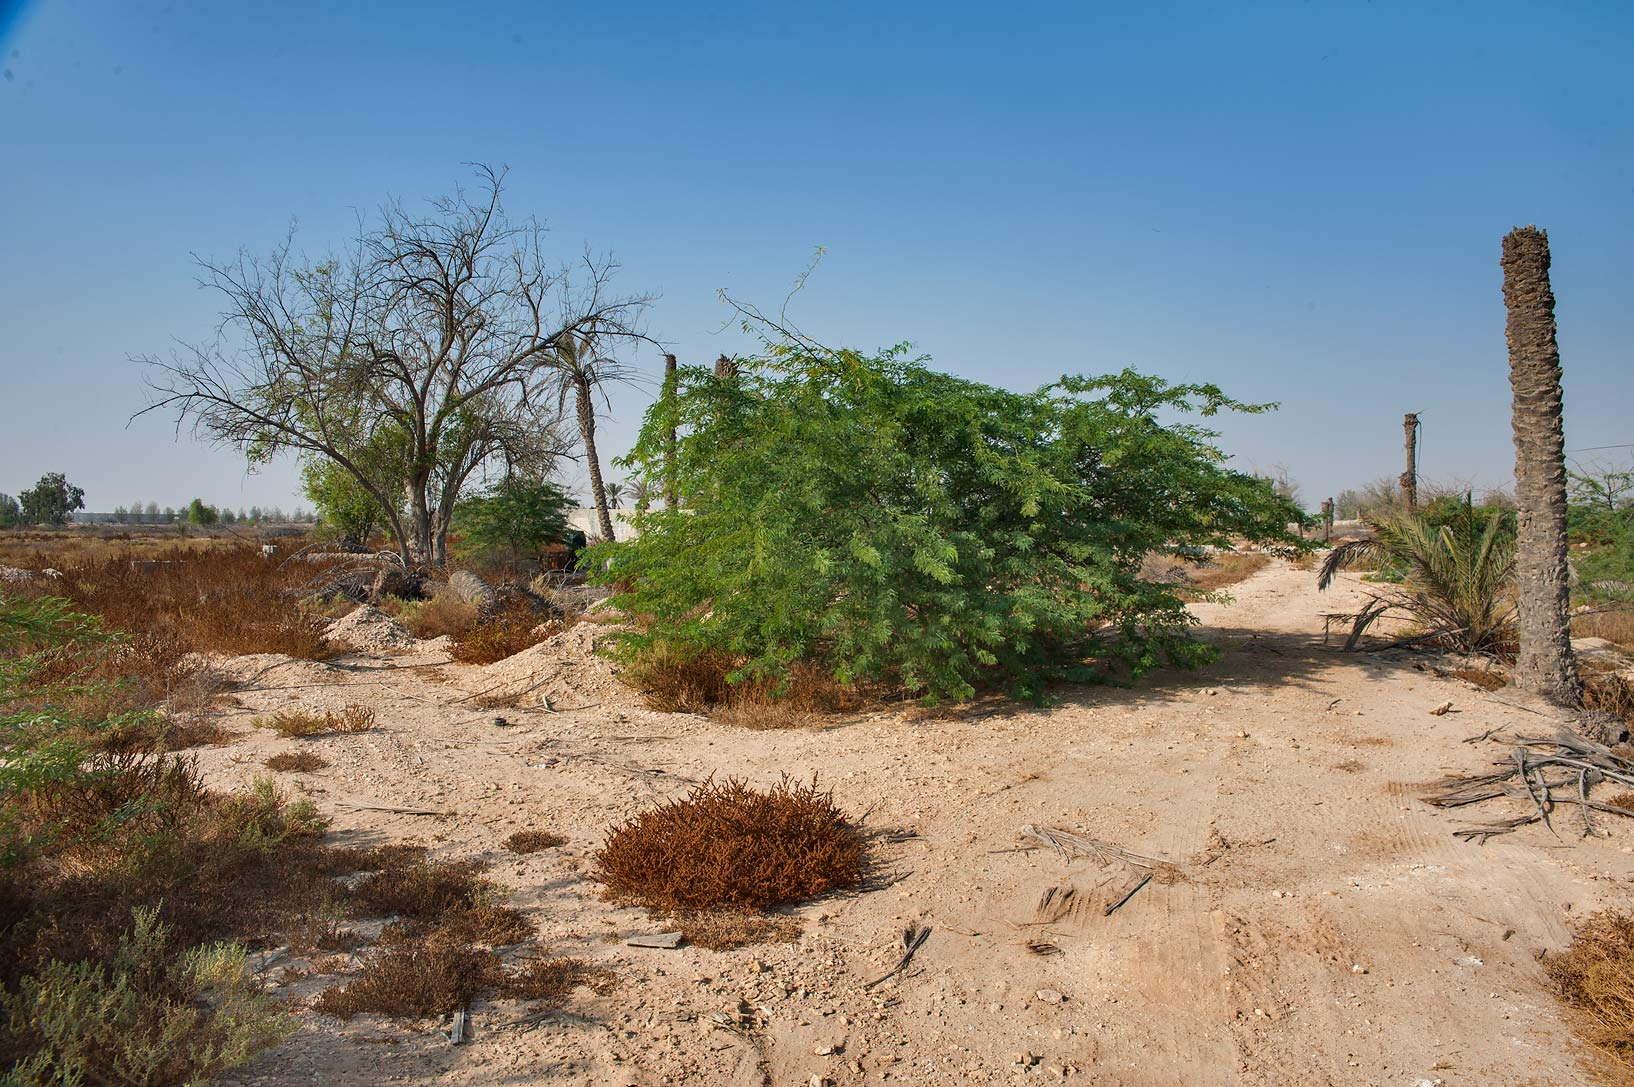 Remains of a garden in a village of Al Mashrab in area of Ras Laffan Farms. Northern Qatar